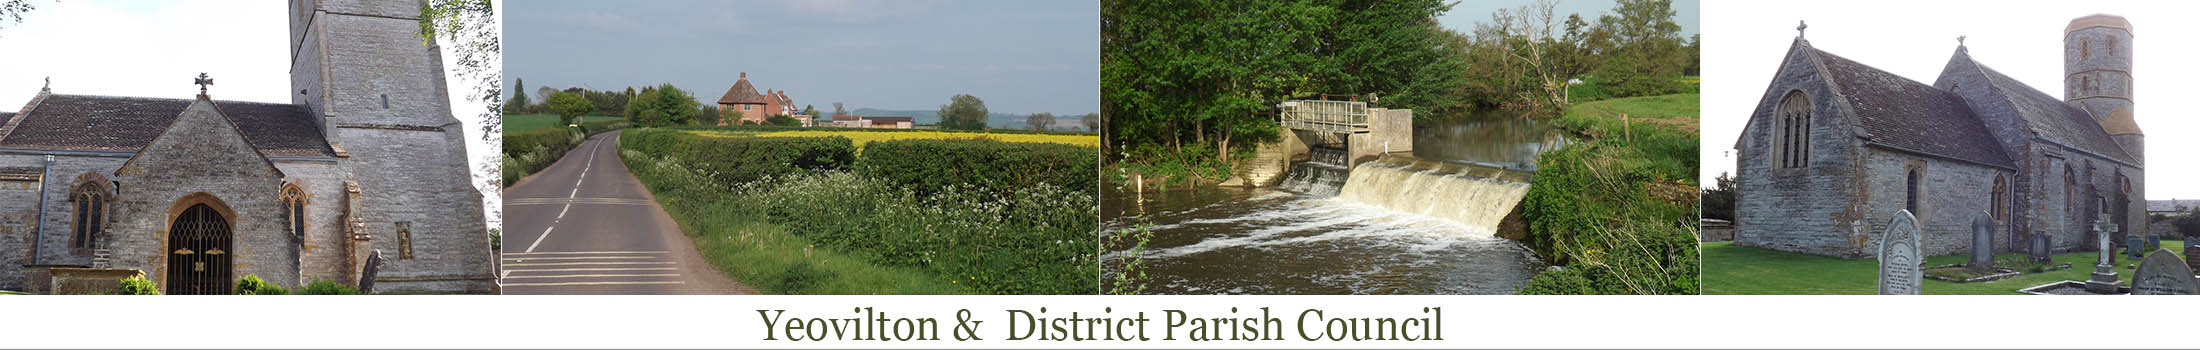 Header Image for Yeovilton Parish Council